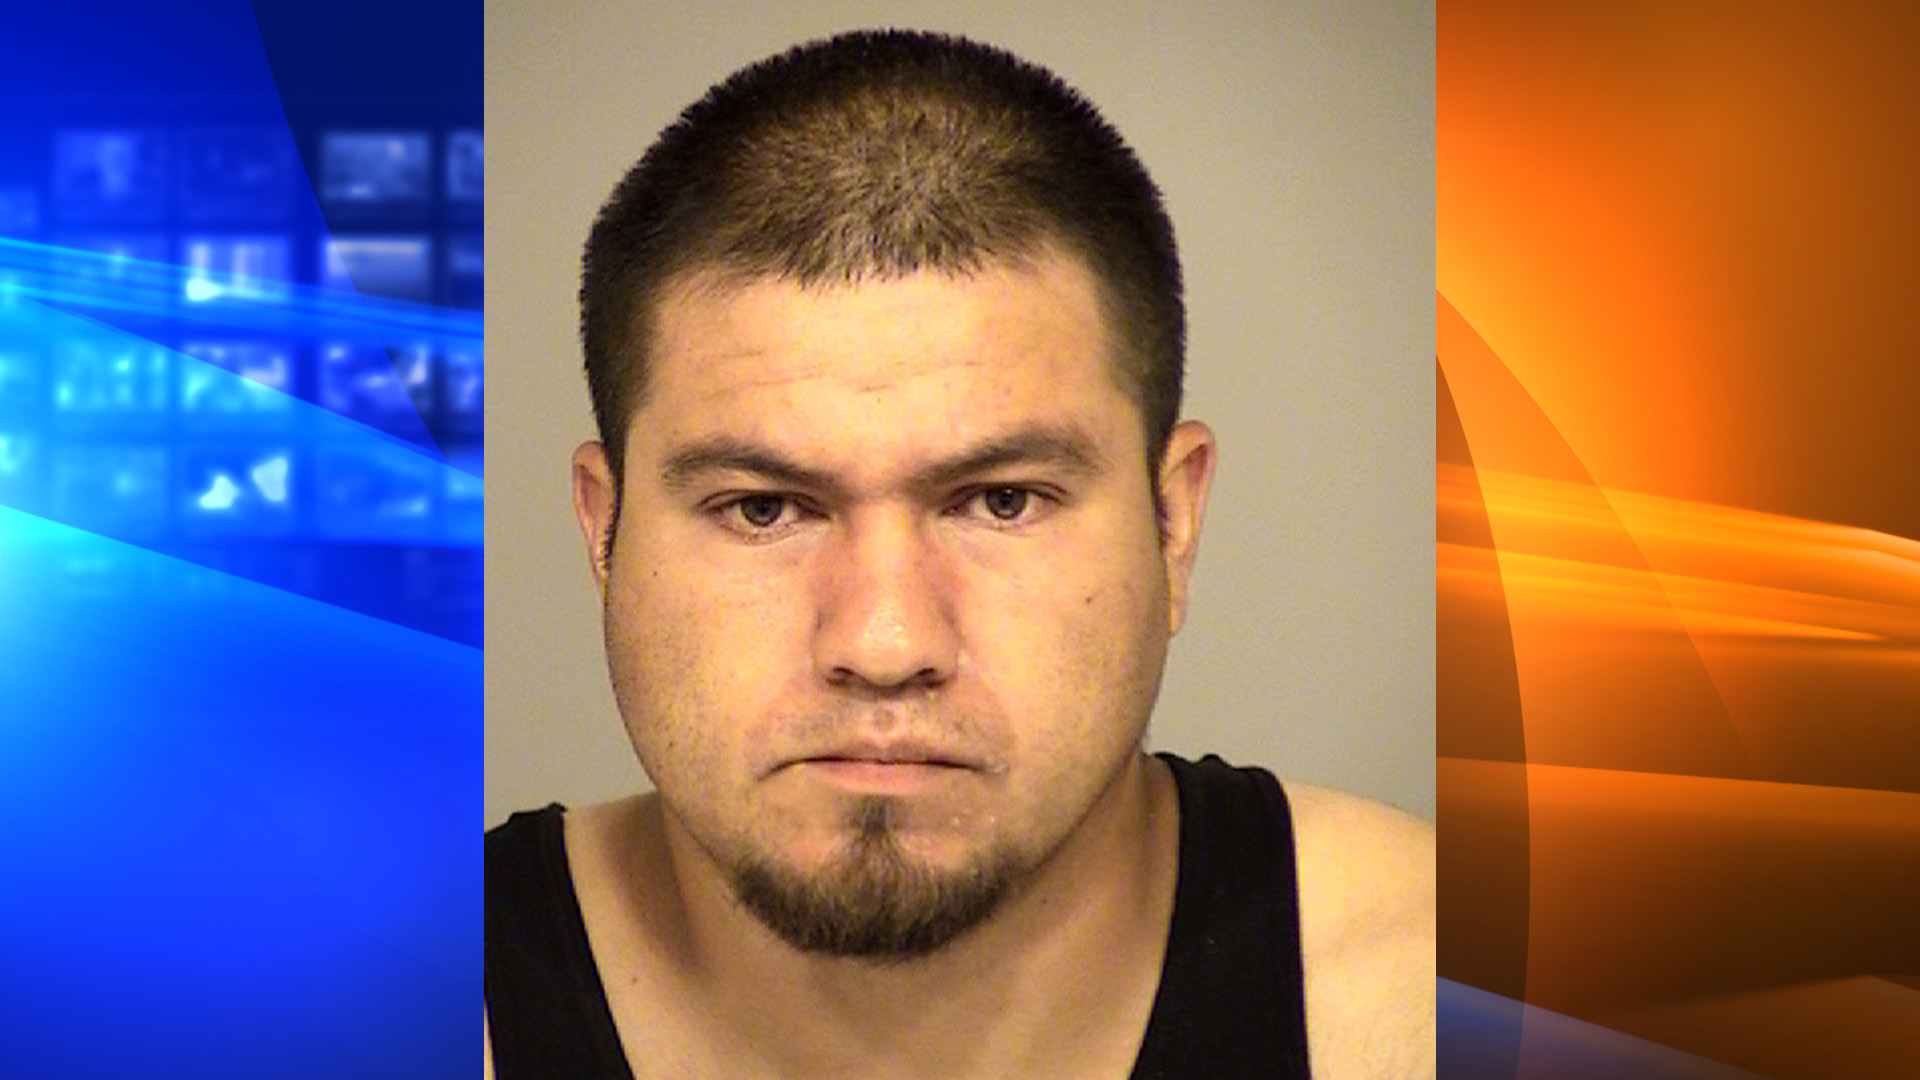 Abel DeJesus Monroy appears in this undated booking photo released by the Ventura County Sheriff's Office.